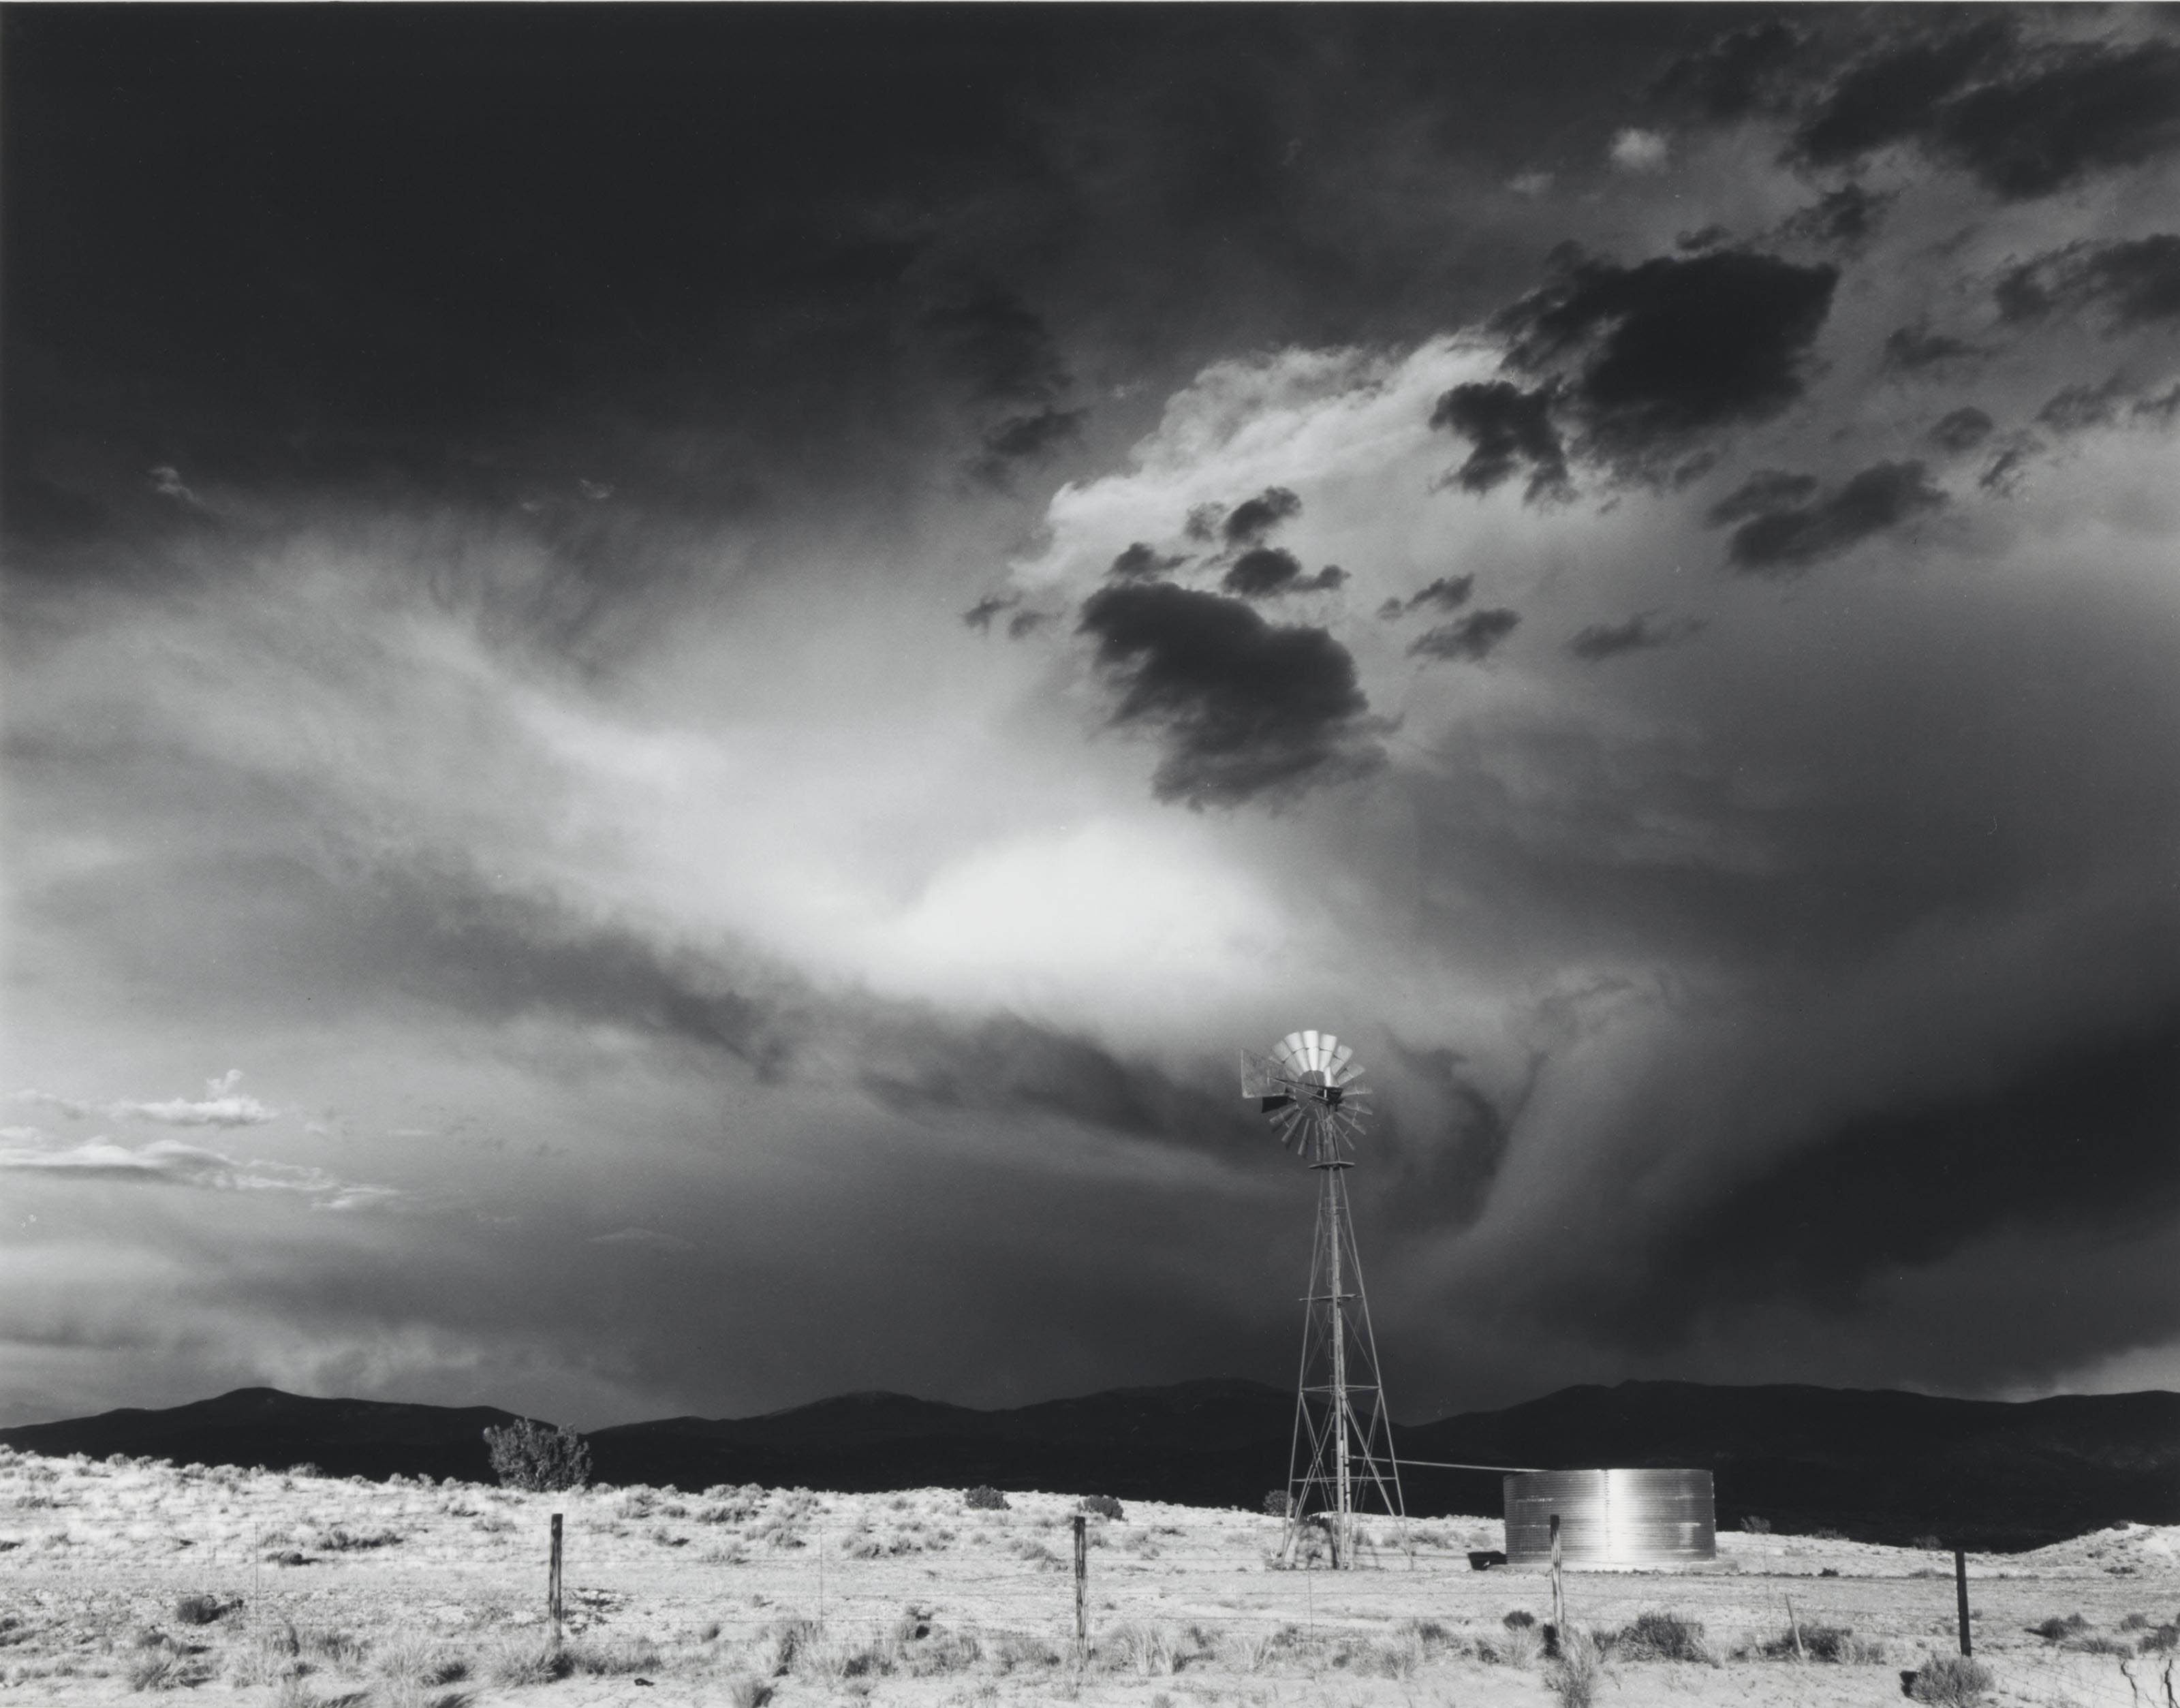 Storm near Santa Fe, New Mexico, 1965; and Church near Glen Ullin, North Dakota, 1969